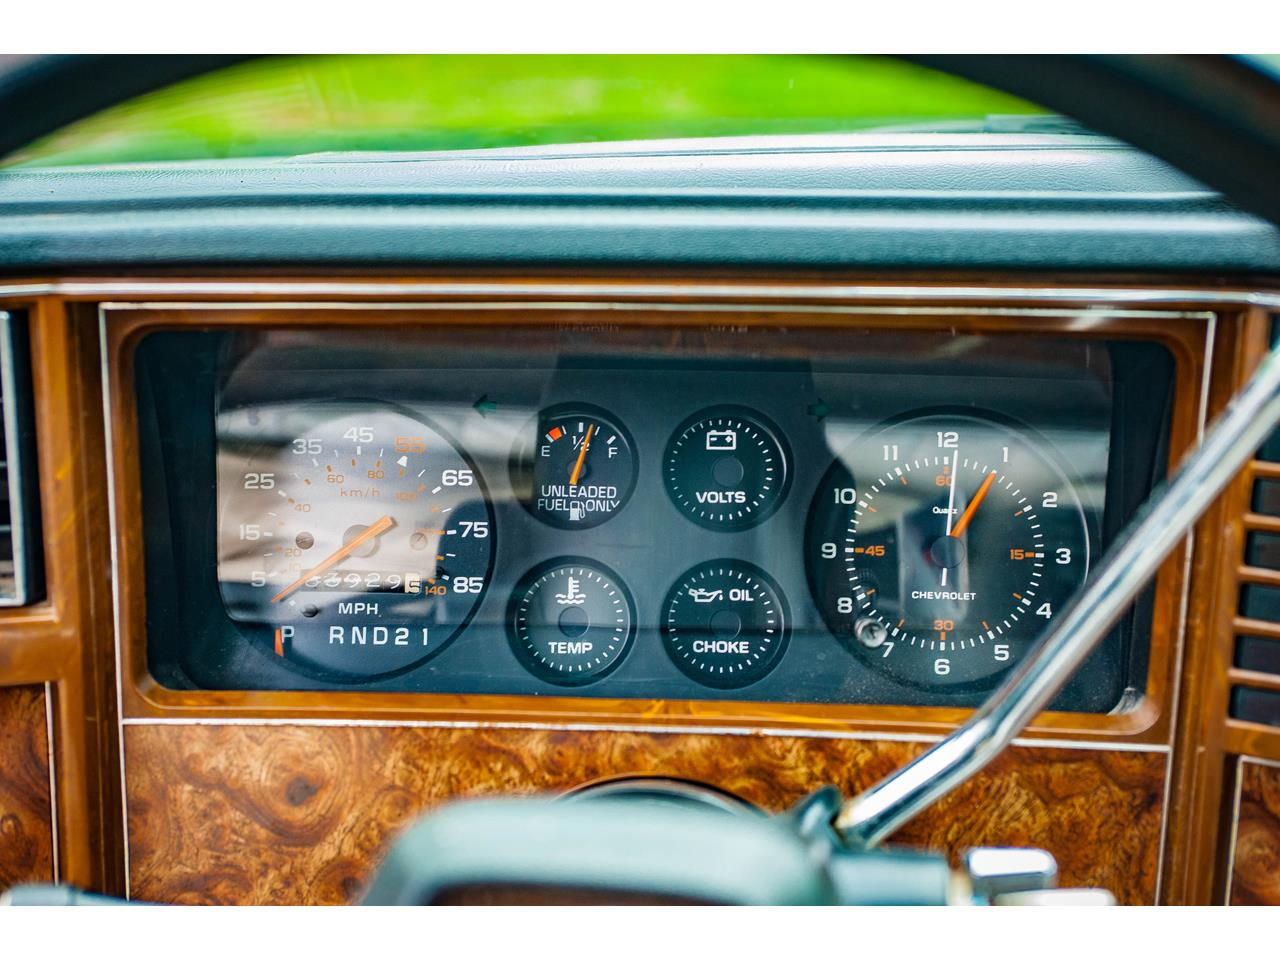 Large Picture of 1982 Chevrolet El Camino located in Illinois Offered by Gateway Classic Cars - St. Louis - QB9A